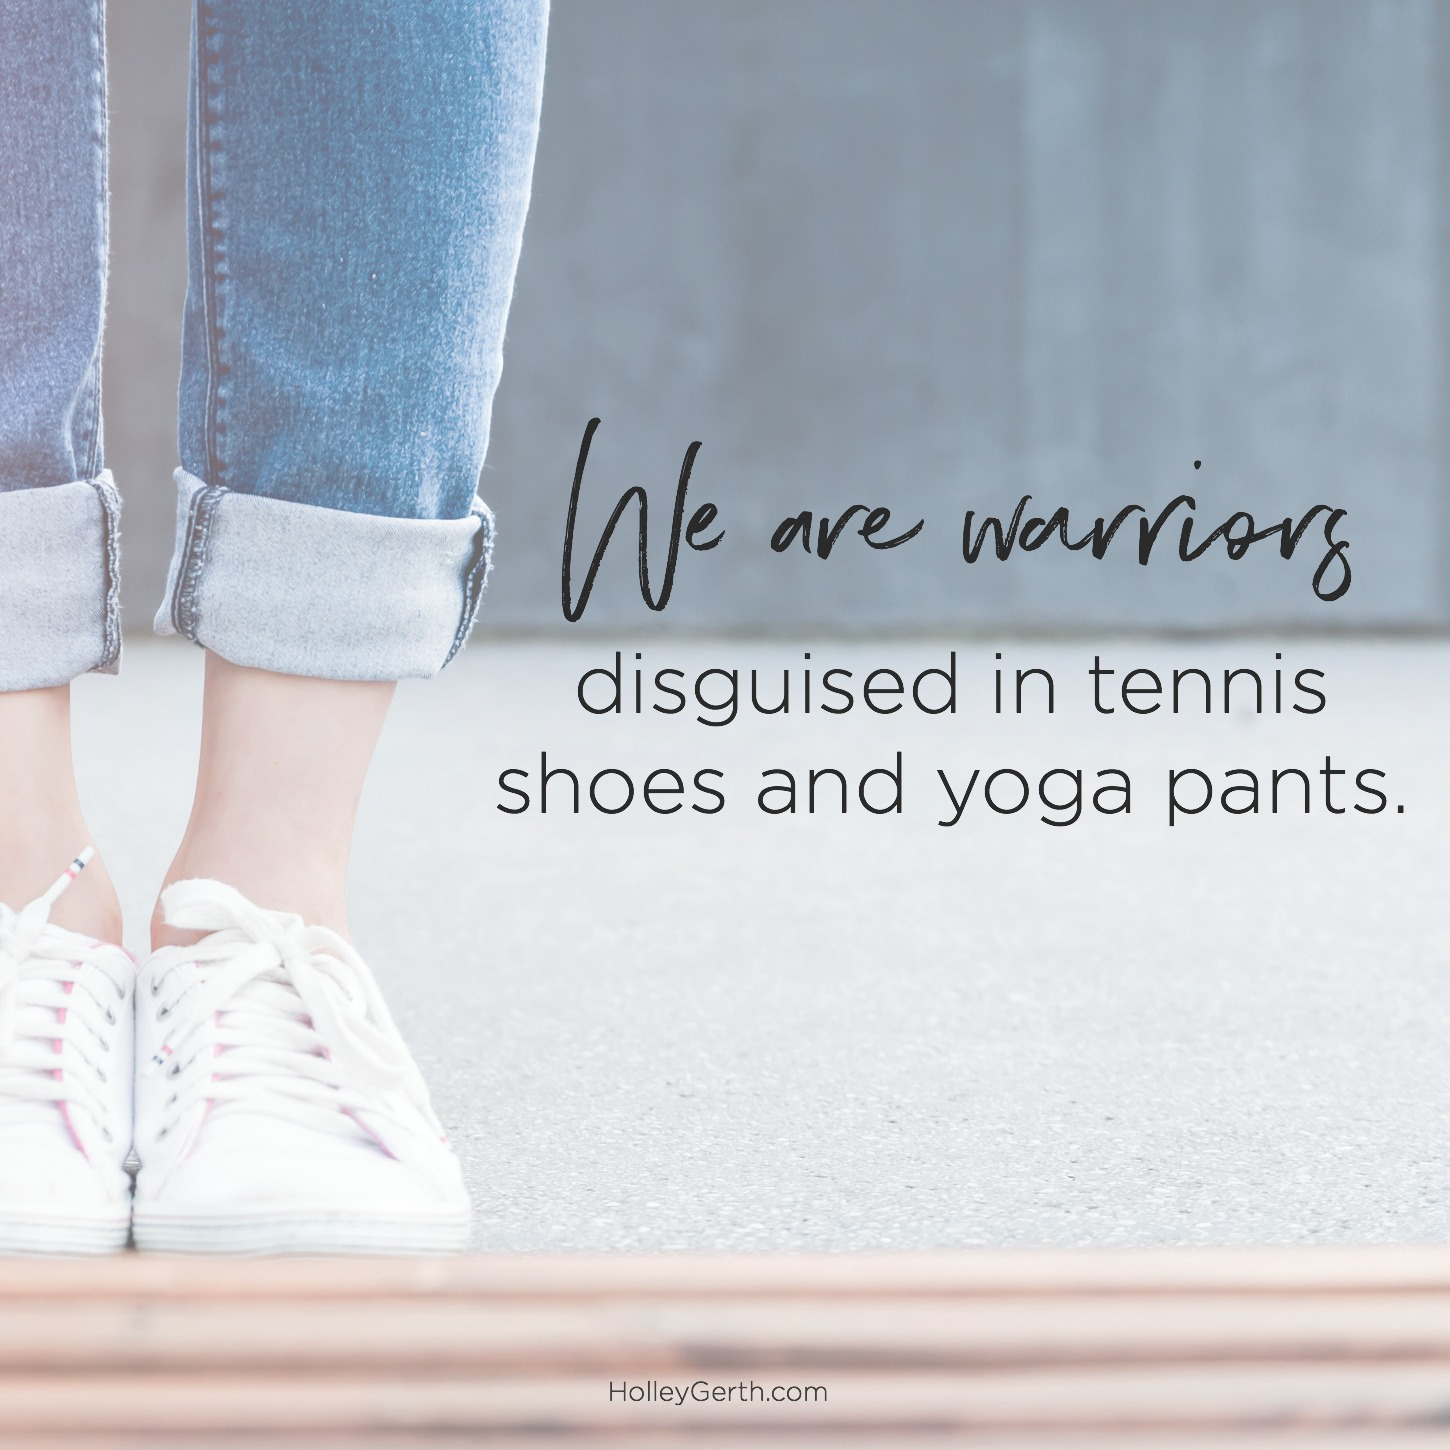 We are warriors disguised in tennis shoes and yoga pants.